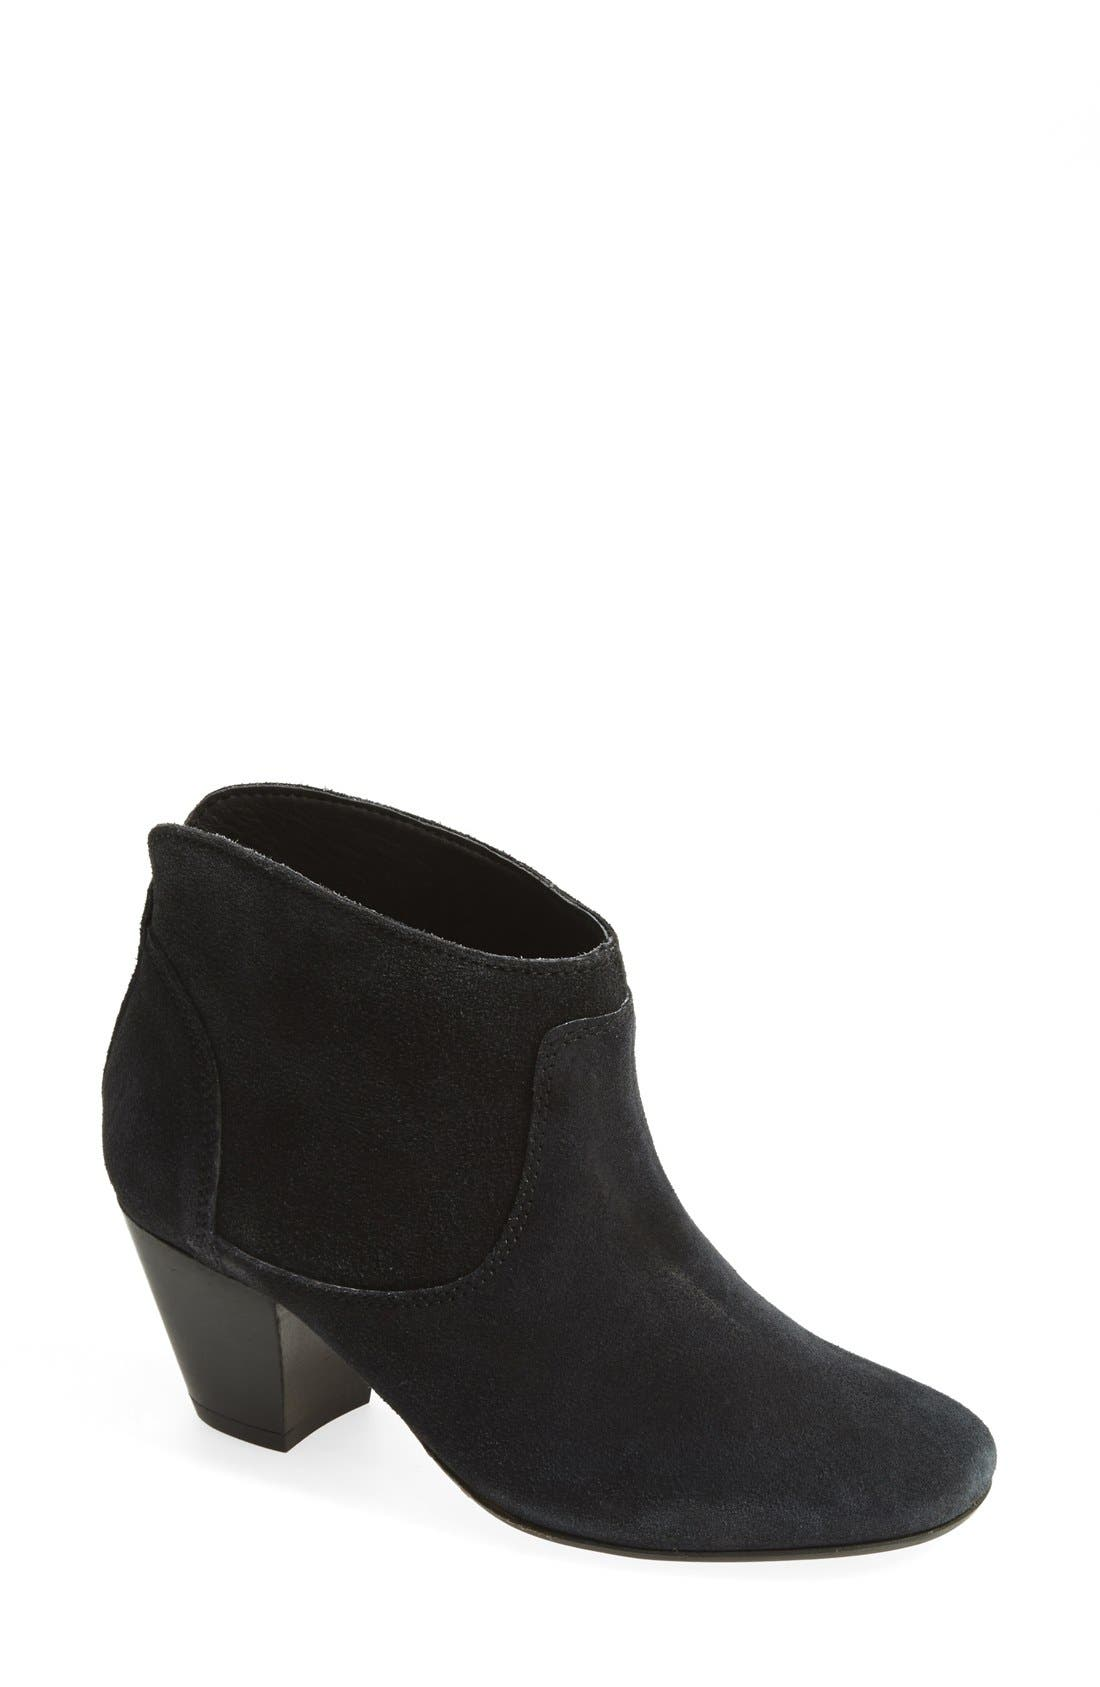 'Kiver' Suede Bootie,                         Main,                         color, 001